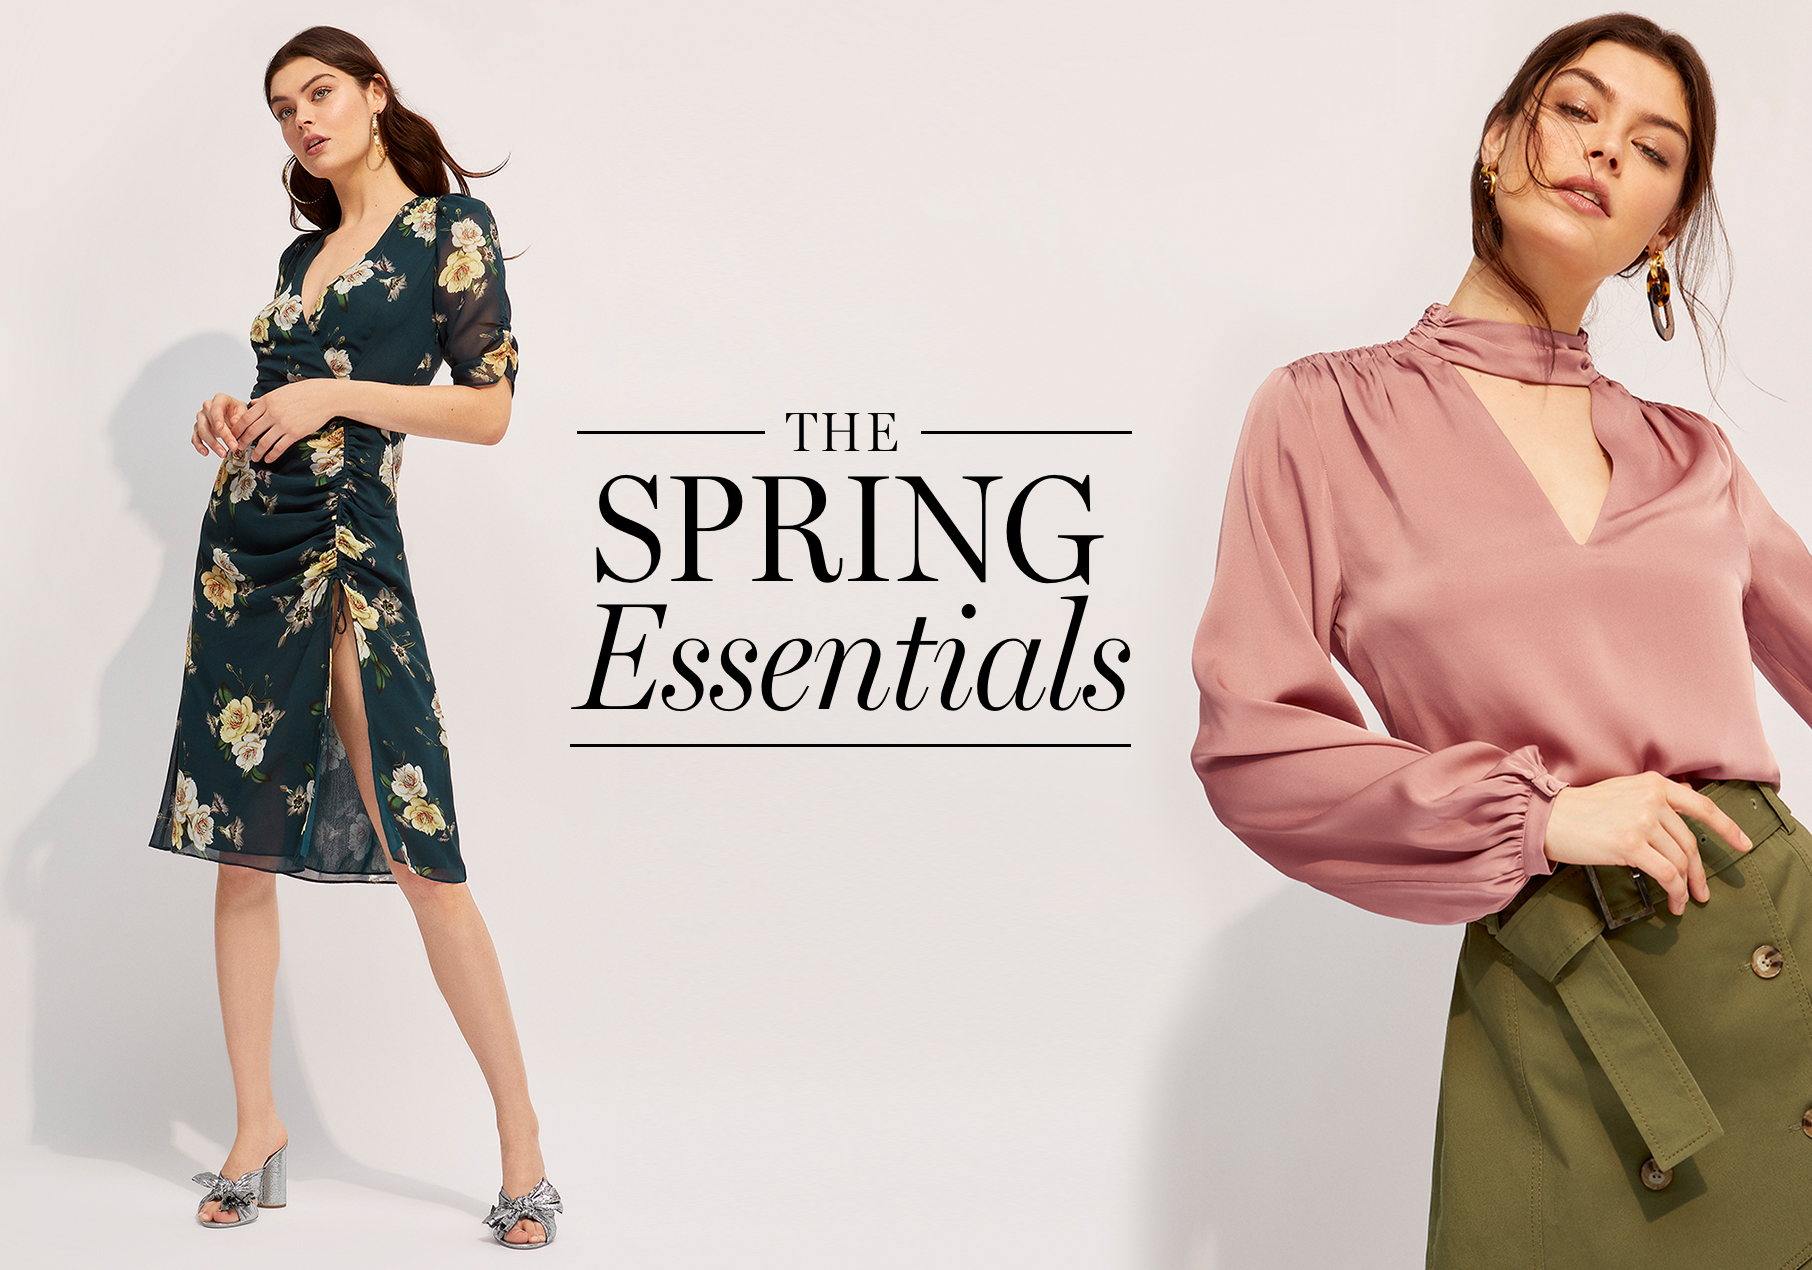 The Spring Essentials